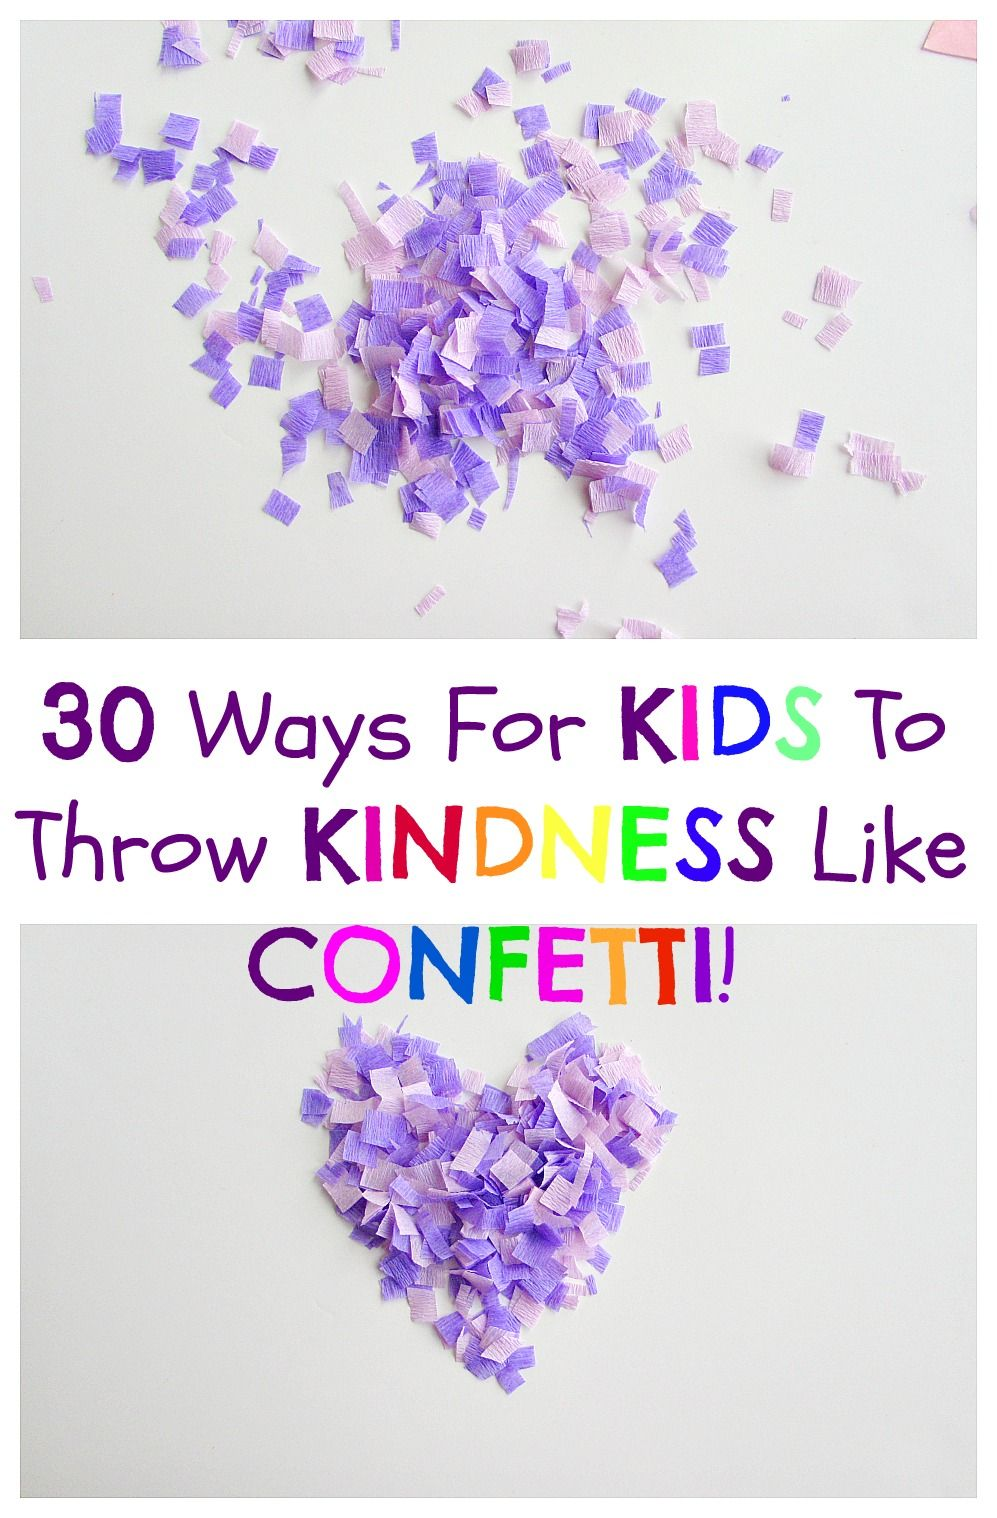 30 ways for kids to throw kindness like confetti! It is